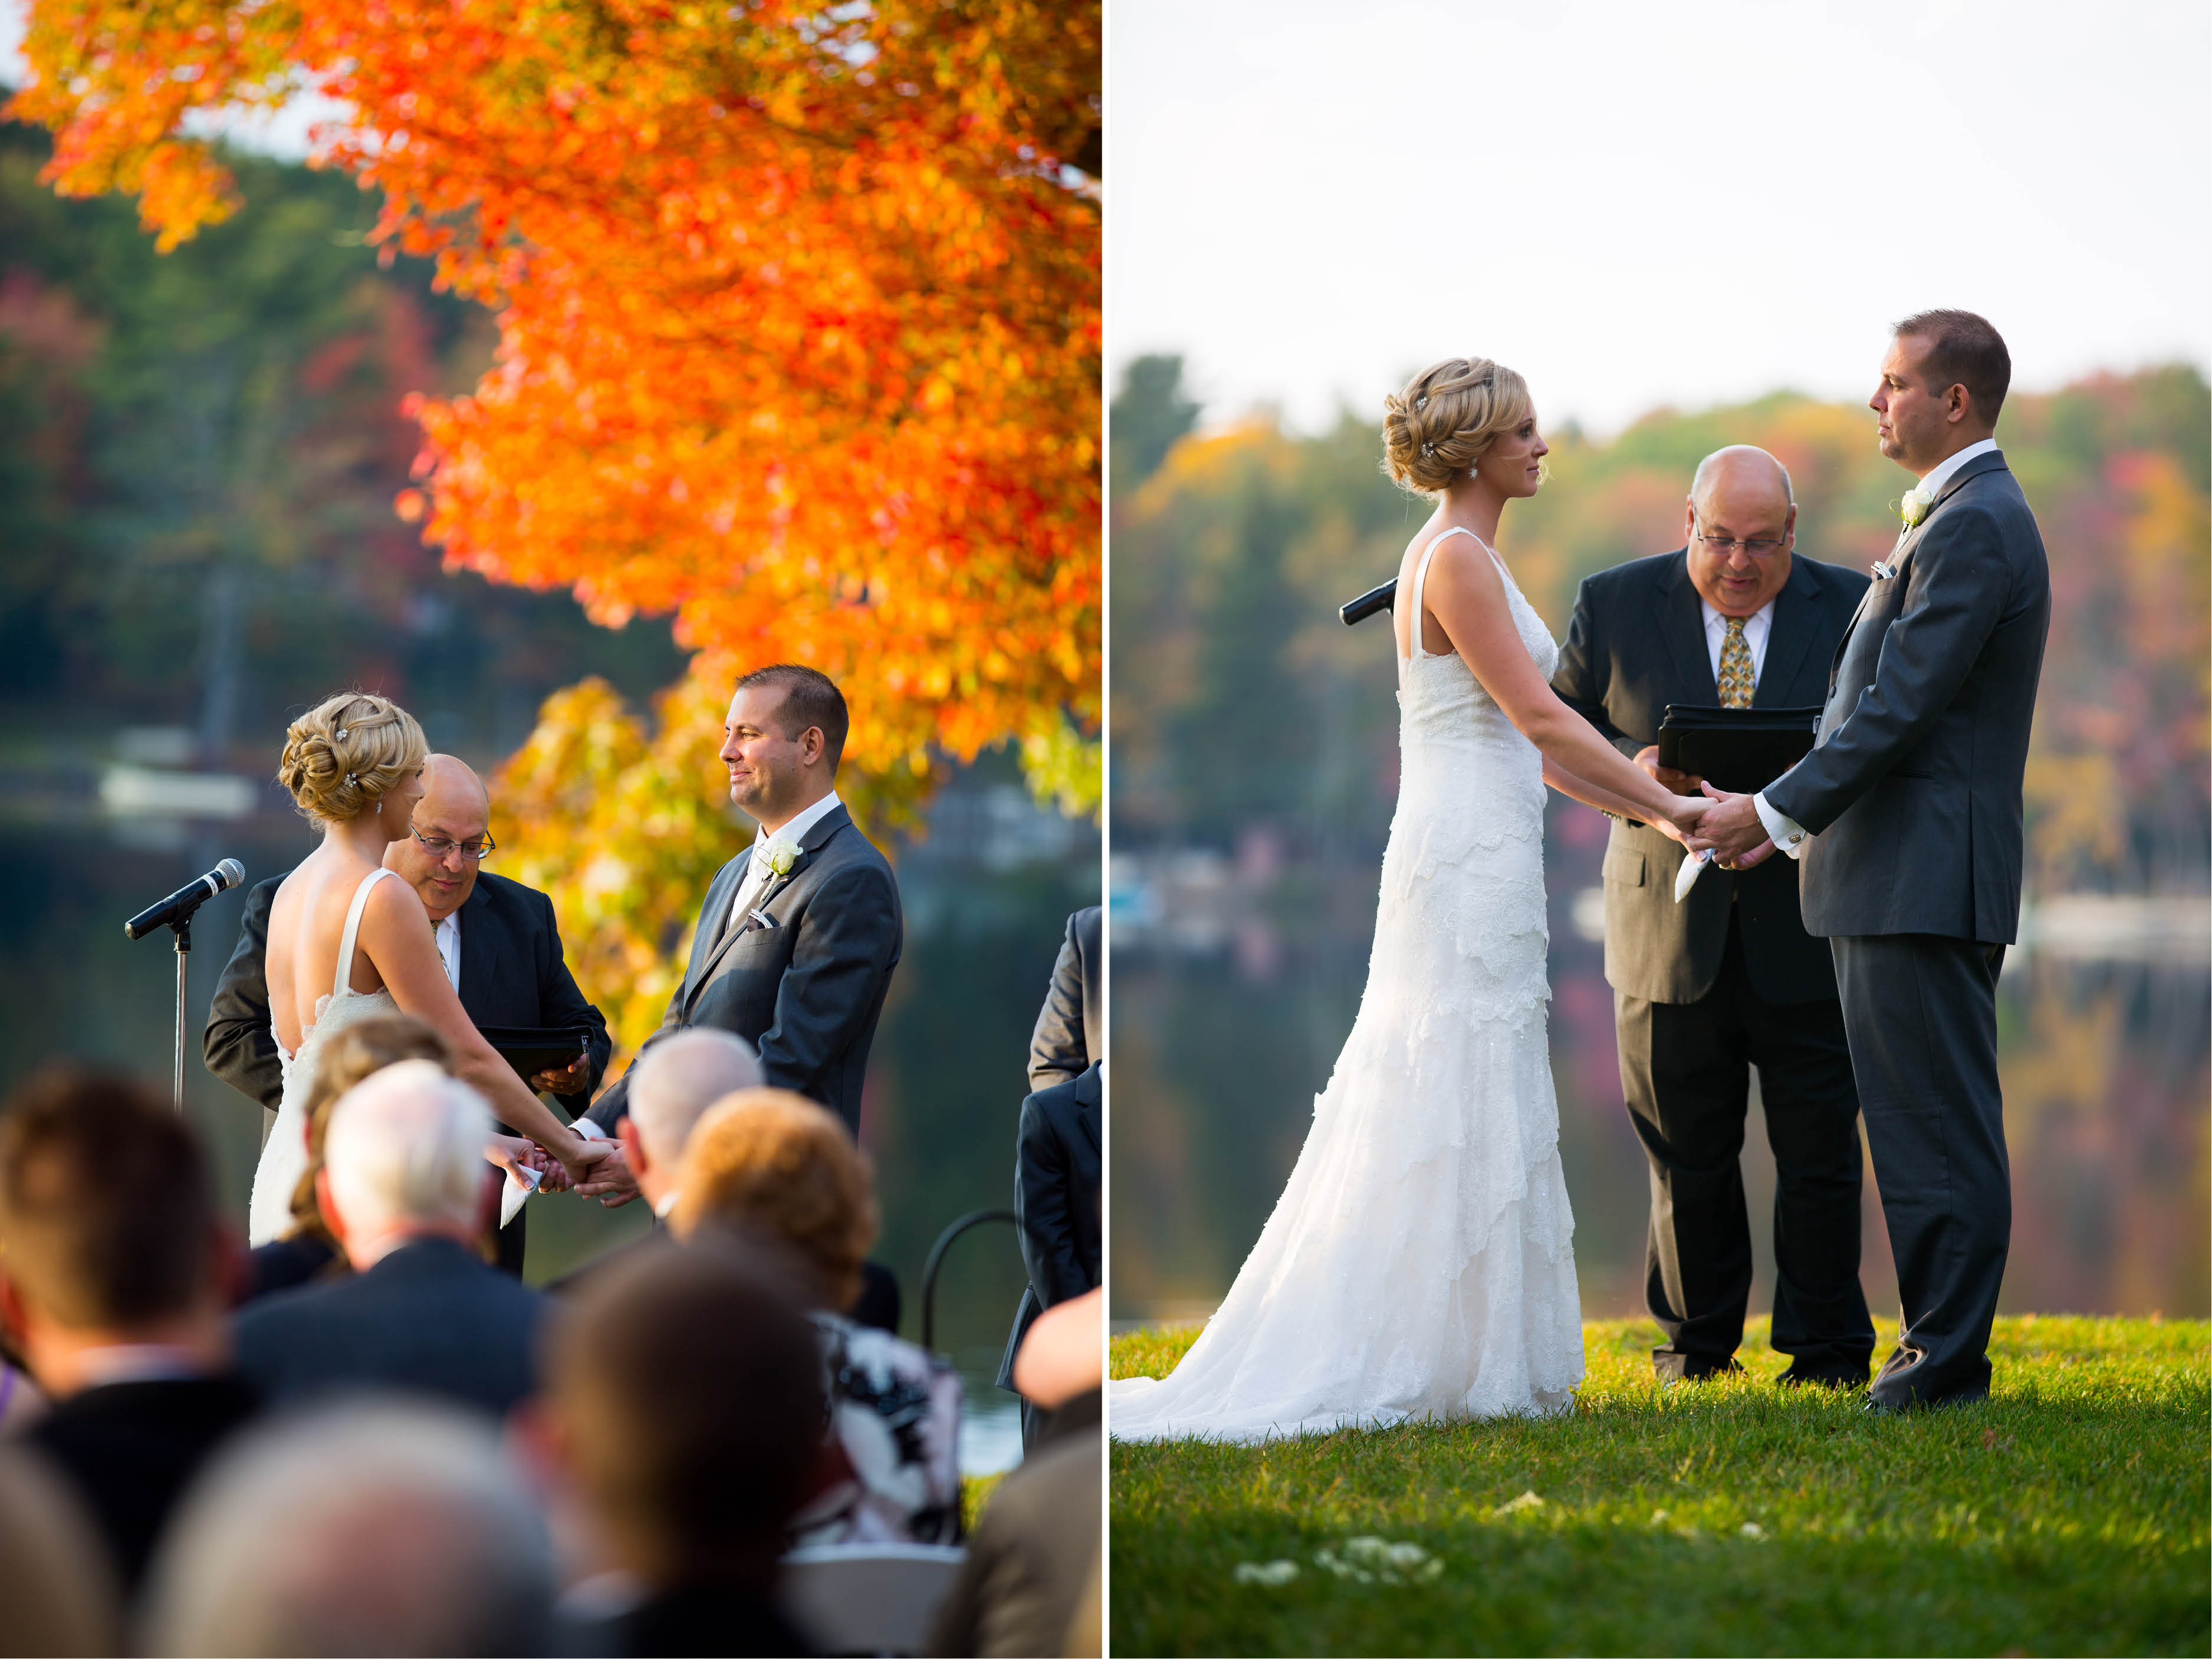 woodloch wedding9